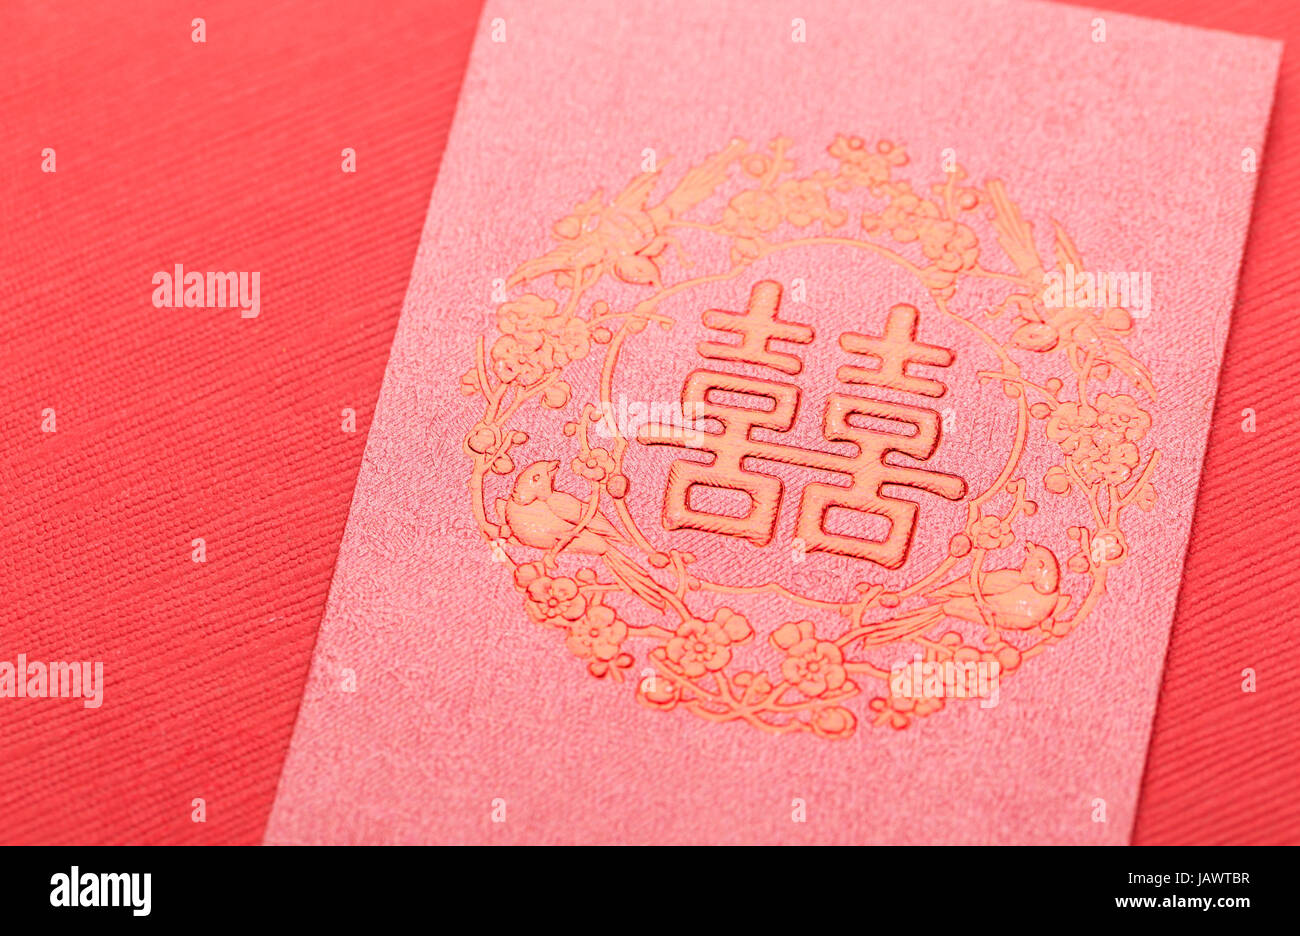 Chinese style wedding invitation card Stock Photo: 144397451 - Alamy